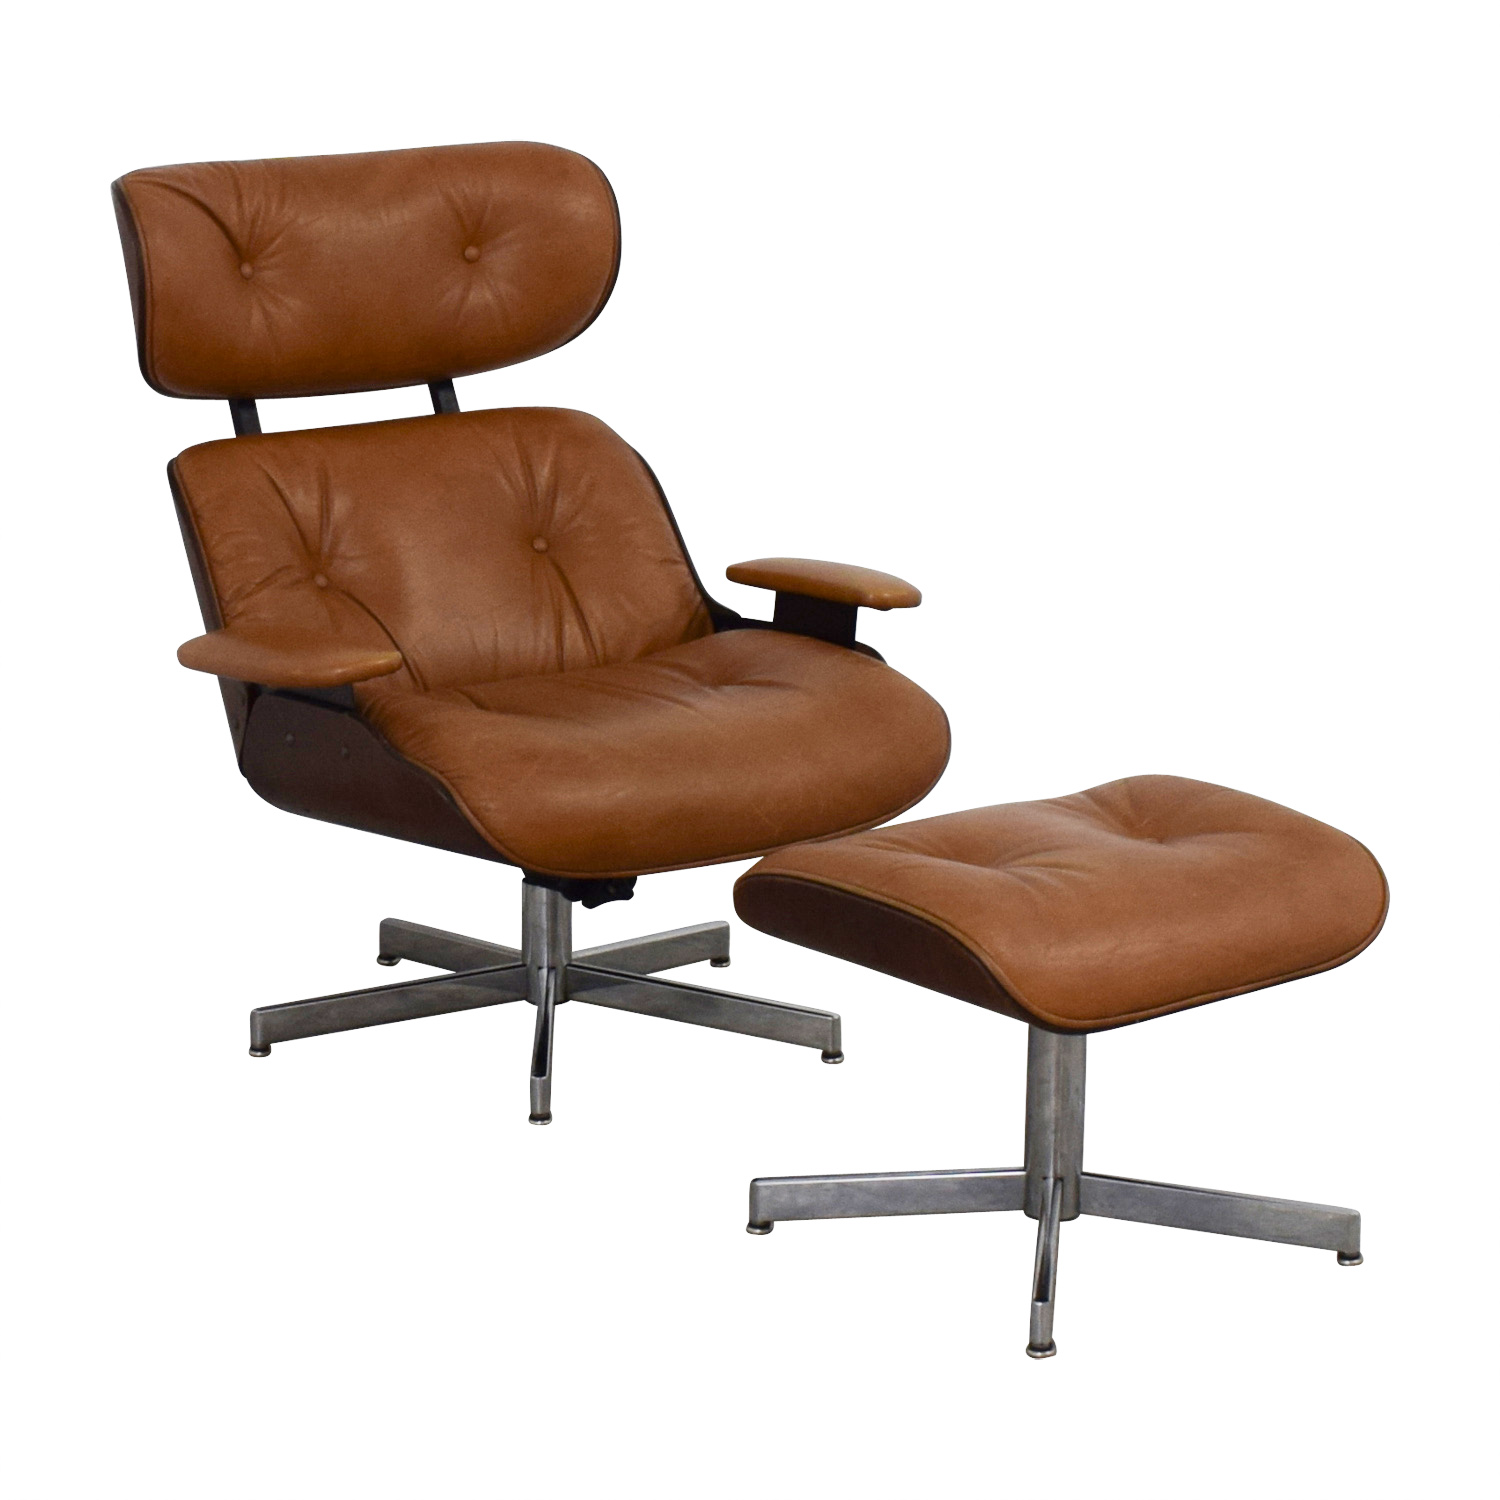 Groovy 55 Off Plycraft Plycraft Eames Style Lounge Chair And Ottoman Chairs Ibusinesslaw Wood Chair Design Ideas Ibusinesslaworg